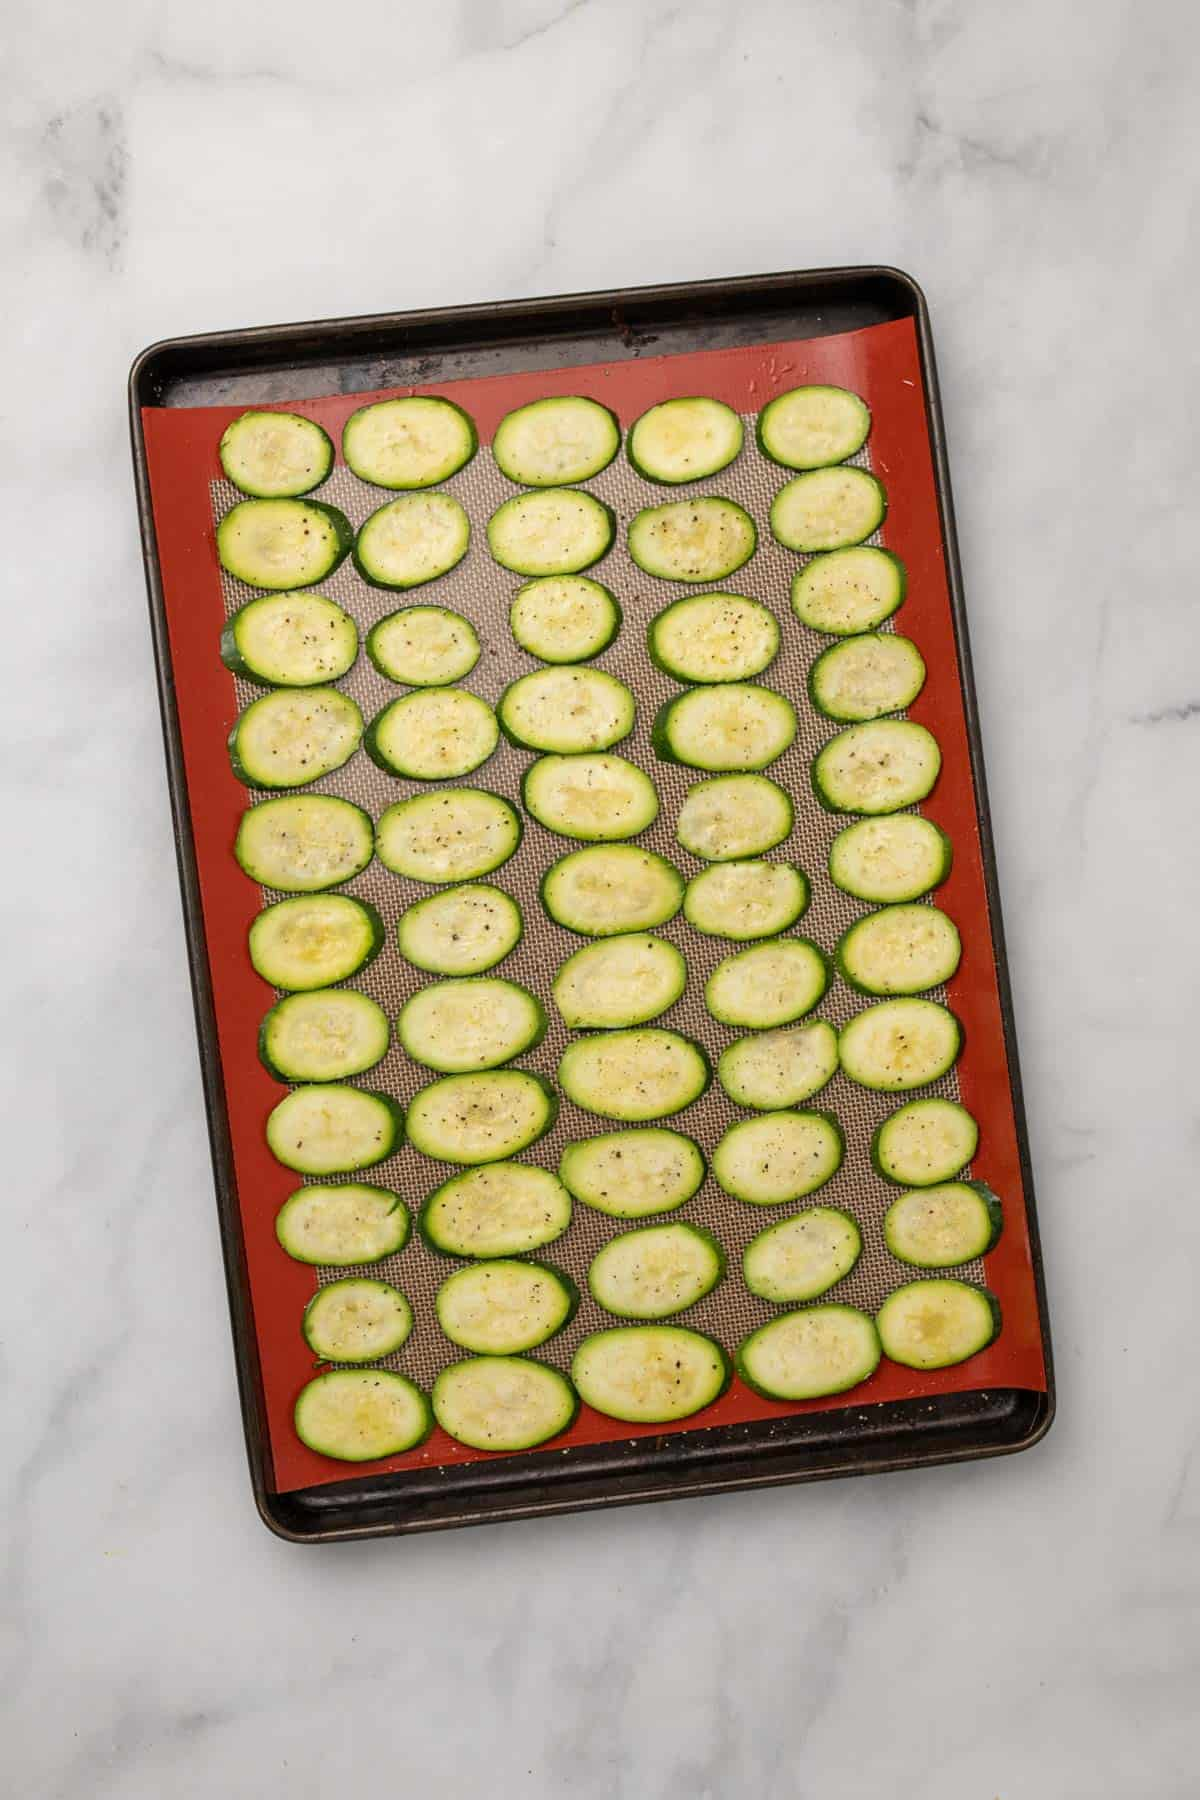 Seasoned zucchini slices on silicone baking mat